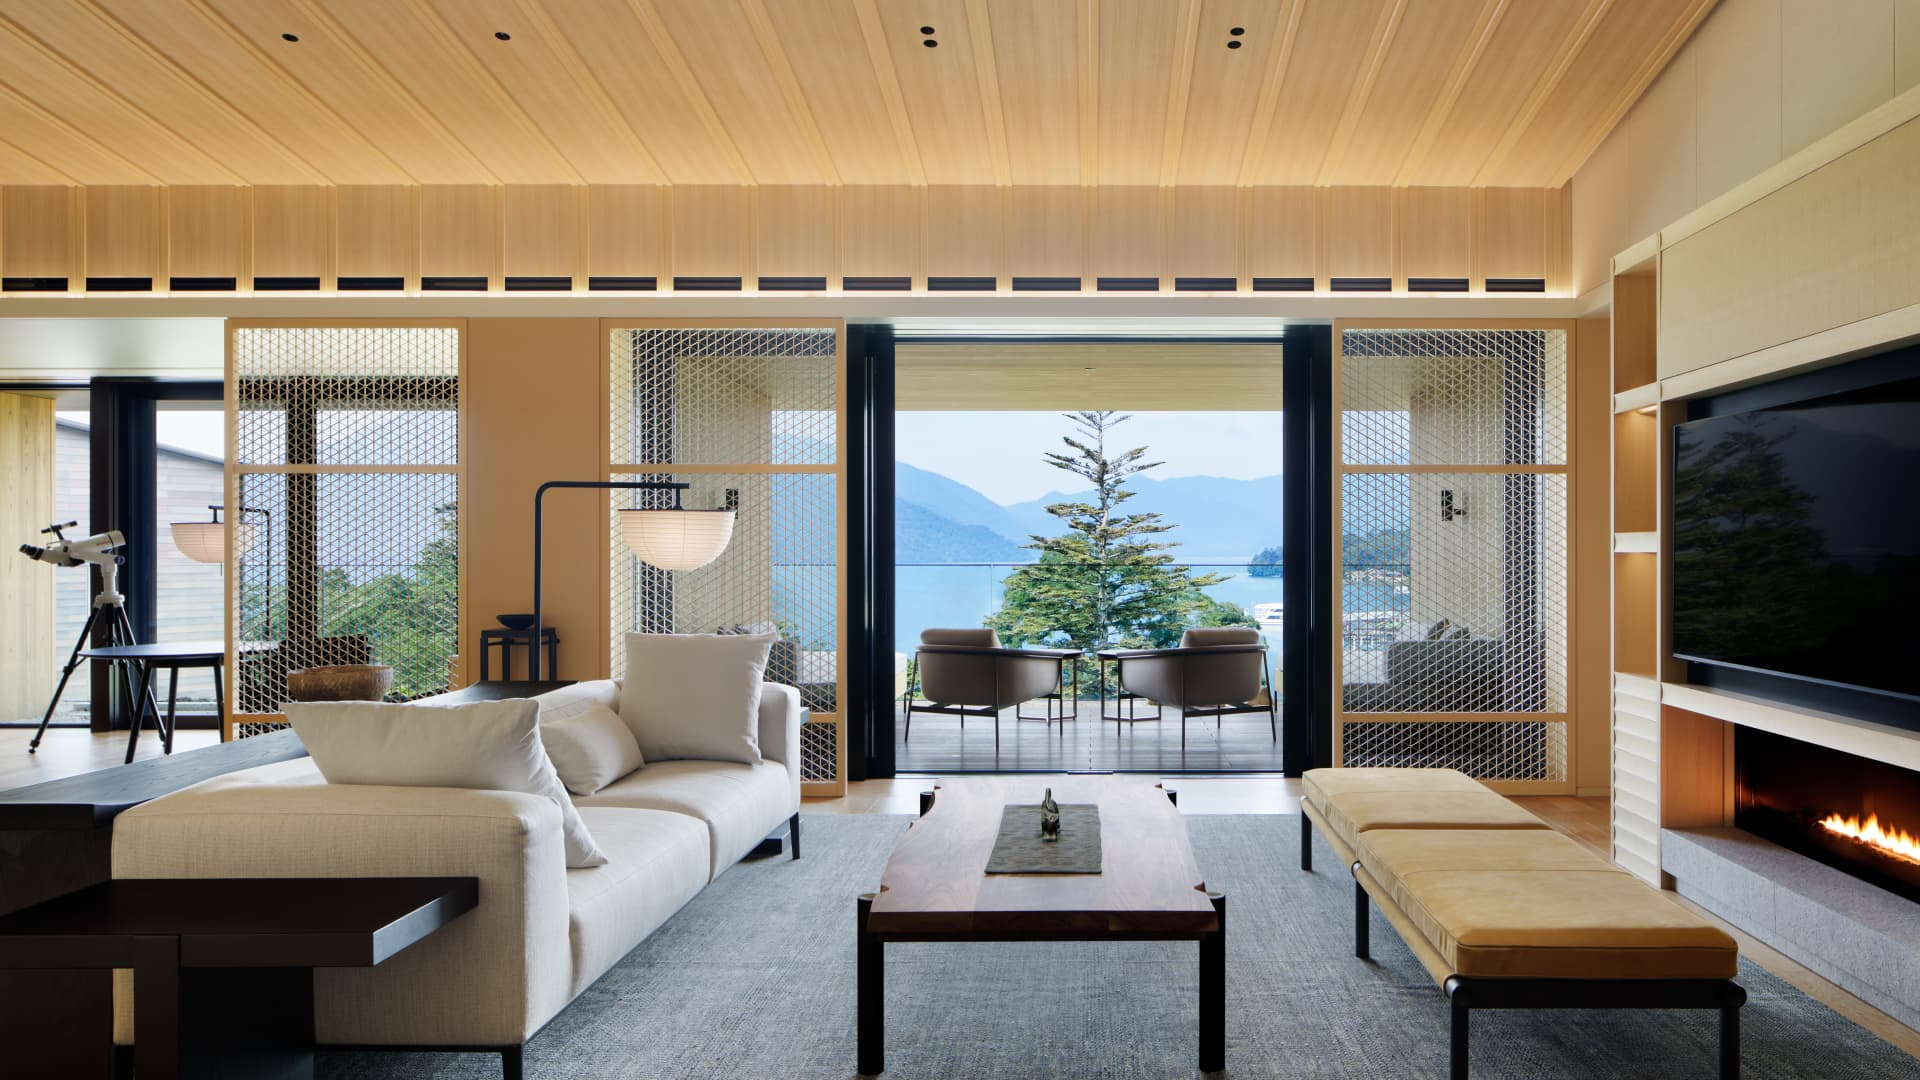 The lakeside Ritz-Carlton, Nikko is close to the UNESCO World Heritage shrines and temples of Nikko.